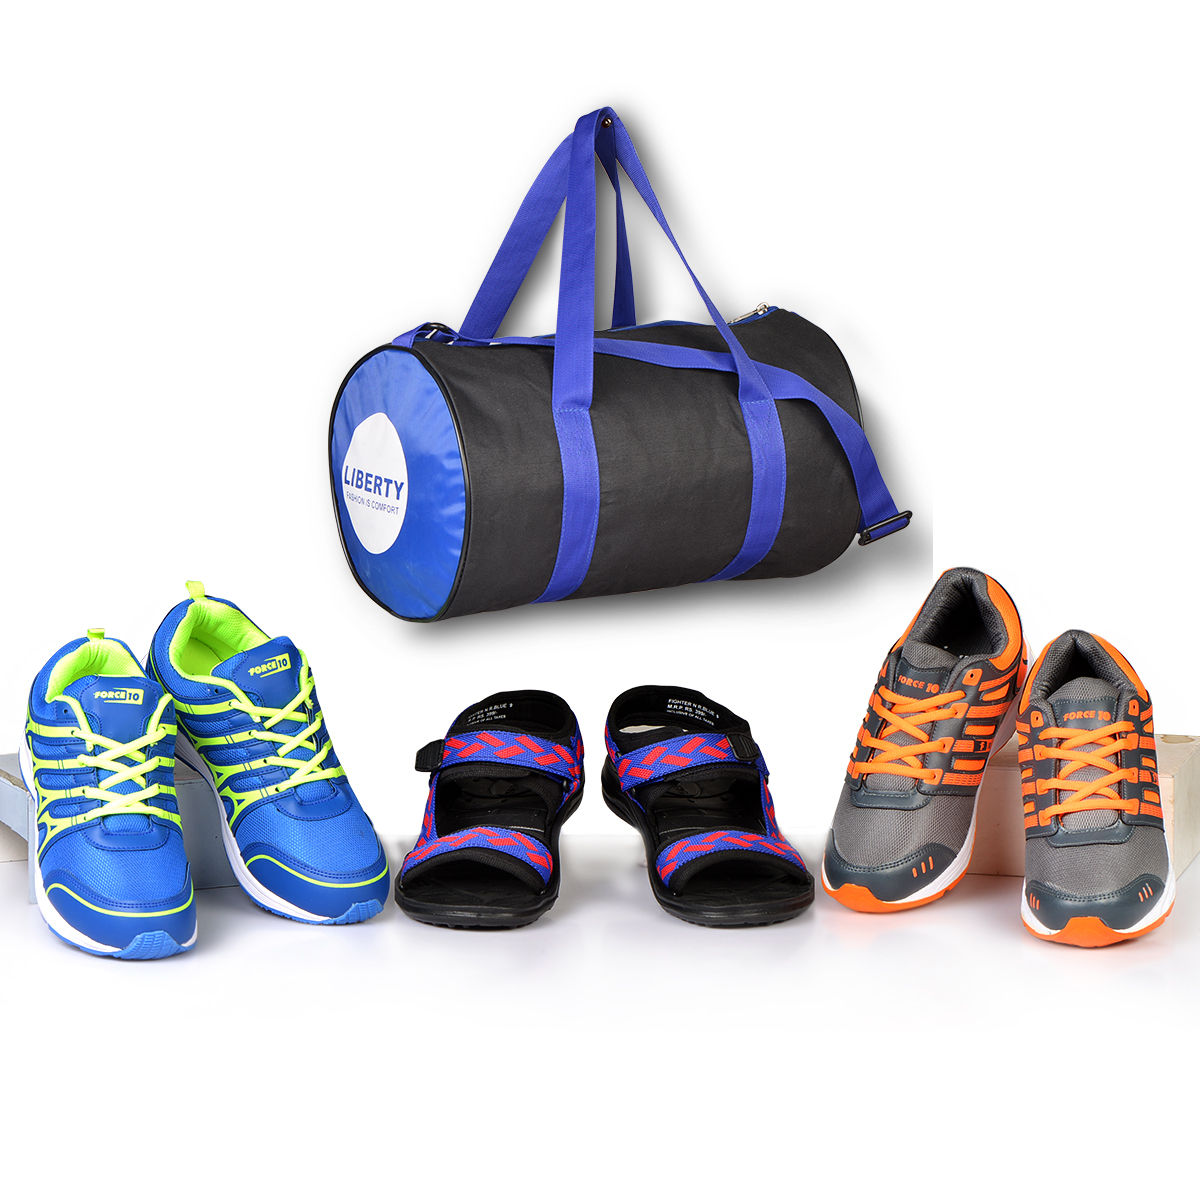 7b5d71d4a8a0d Buy Liberty 2 Sports Shoes + Multipurpose Bag + 1 Sandal Online at Best  Price in India on Naaptol.com